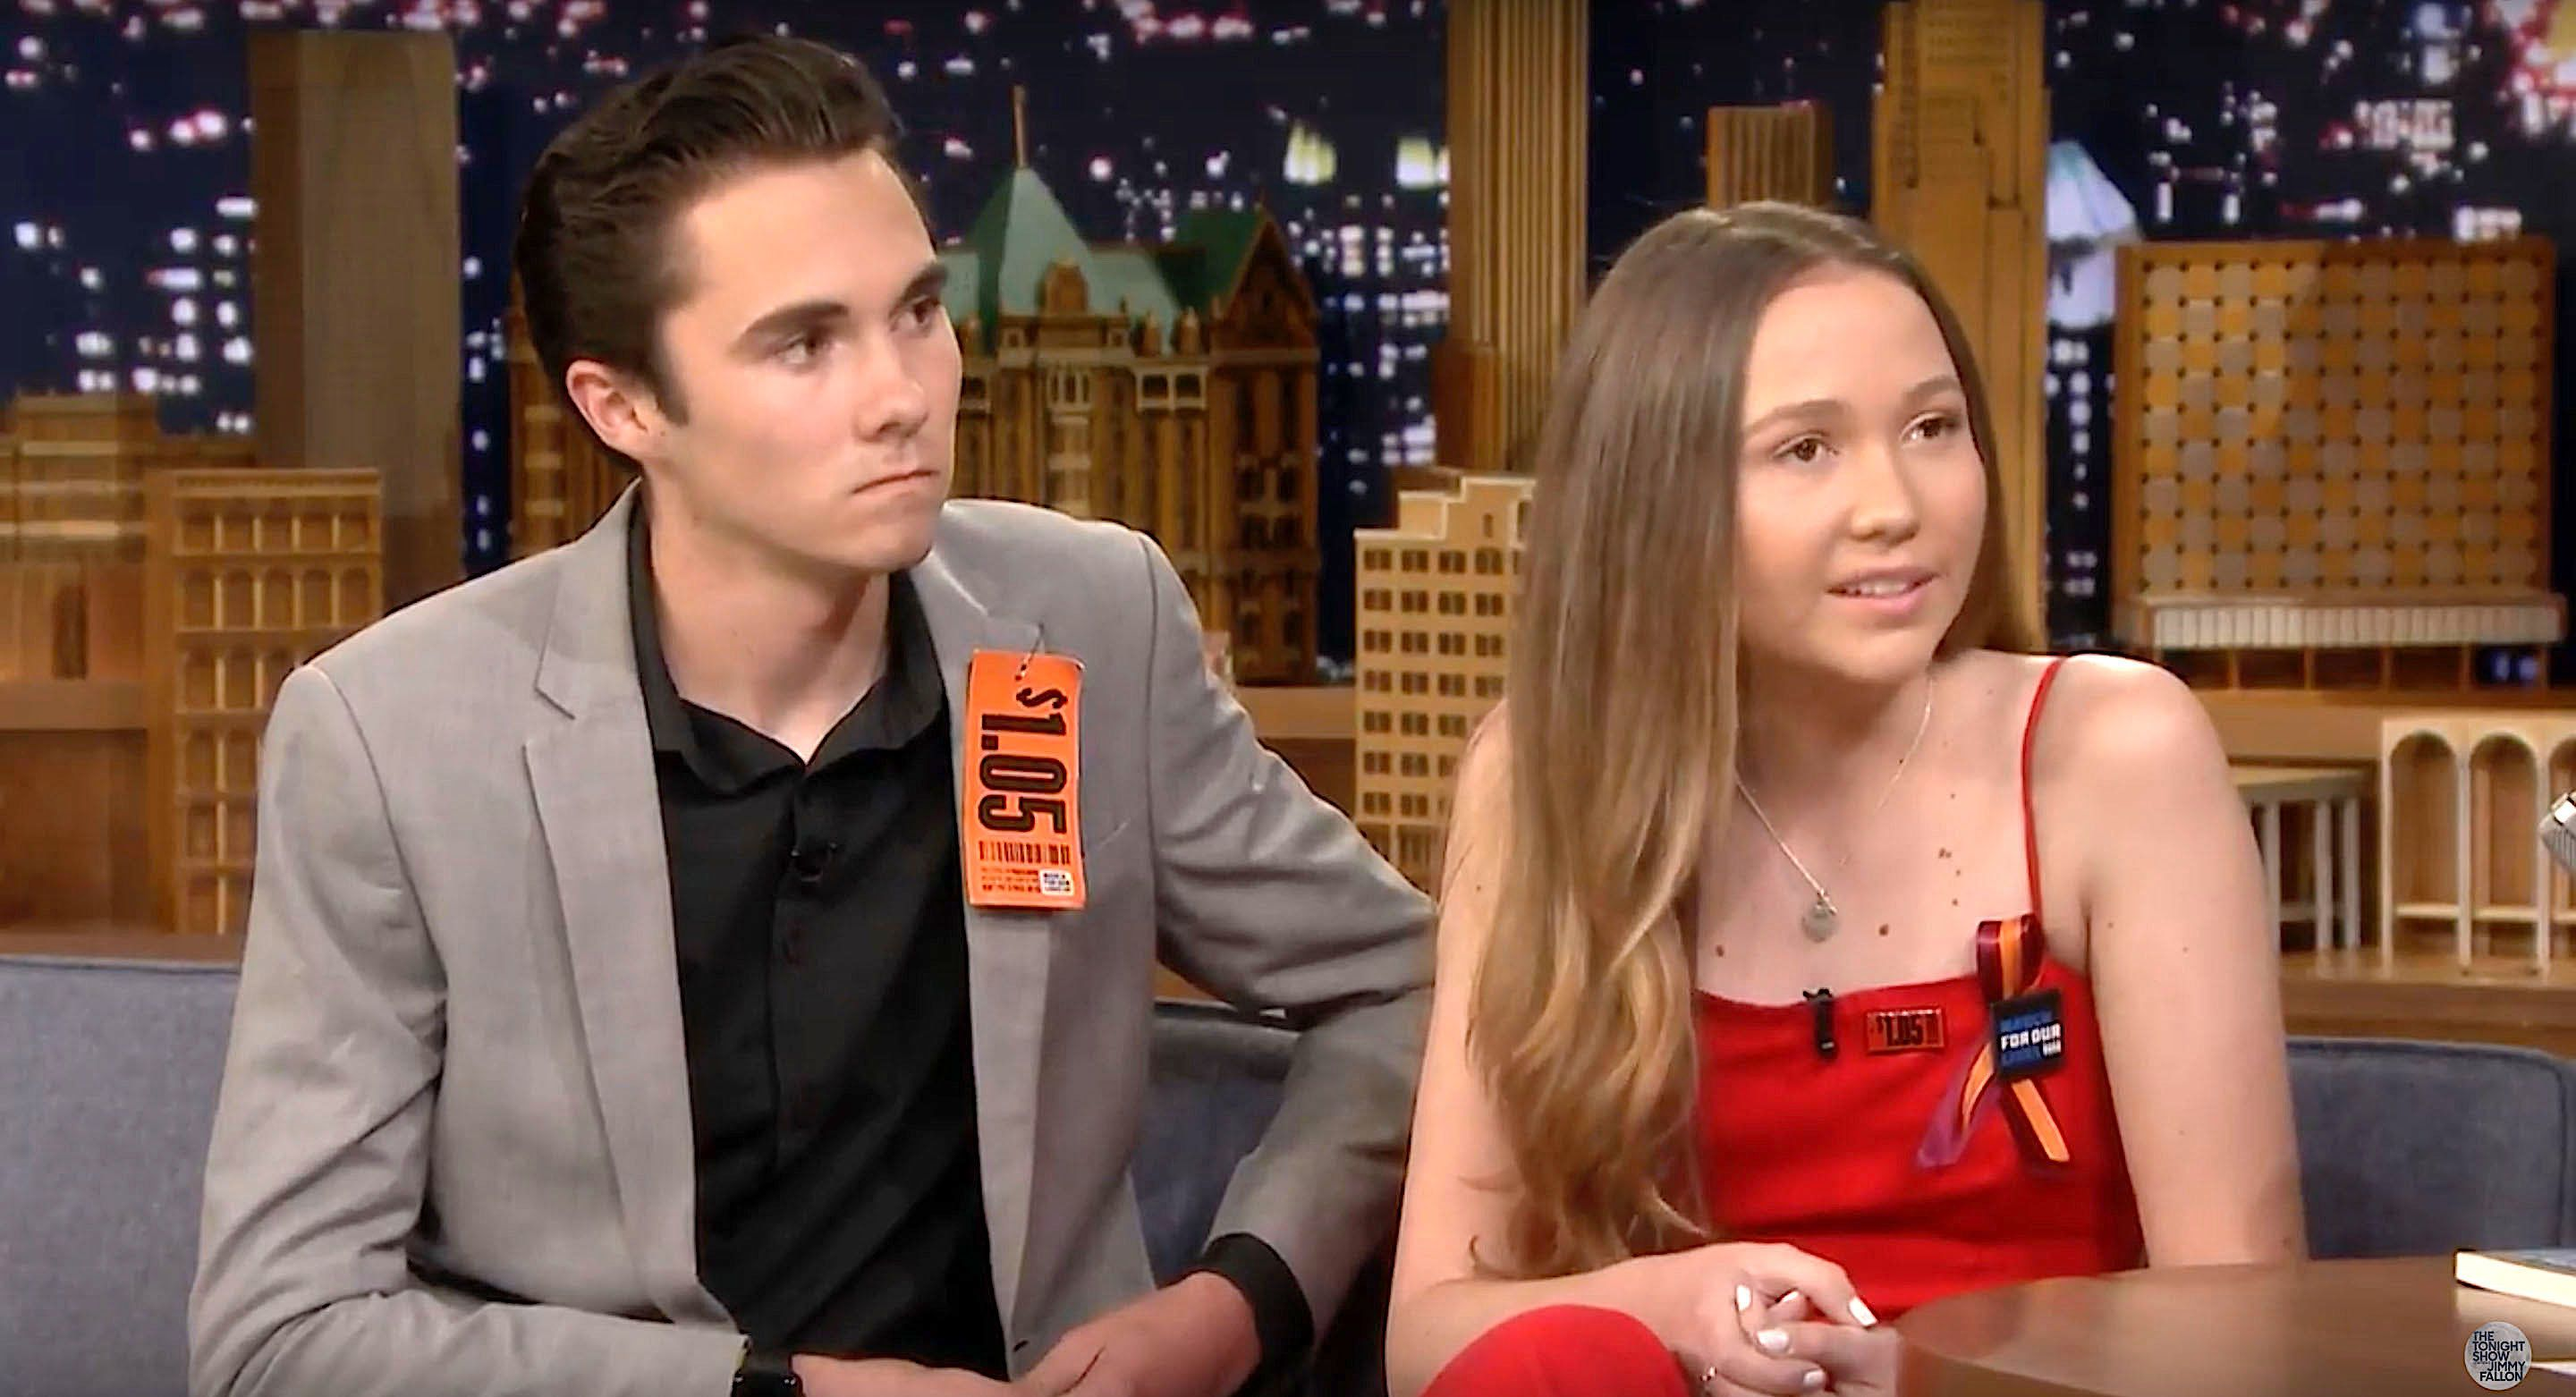 Parkland Survivors Urge Americans To Vote For 'Morally Just